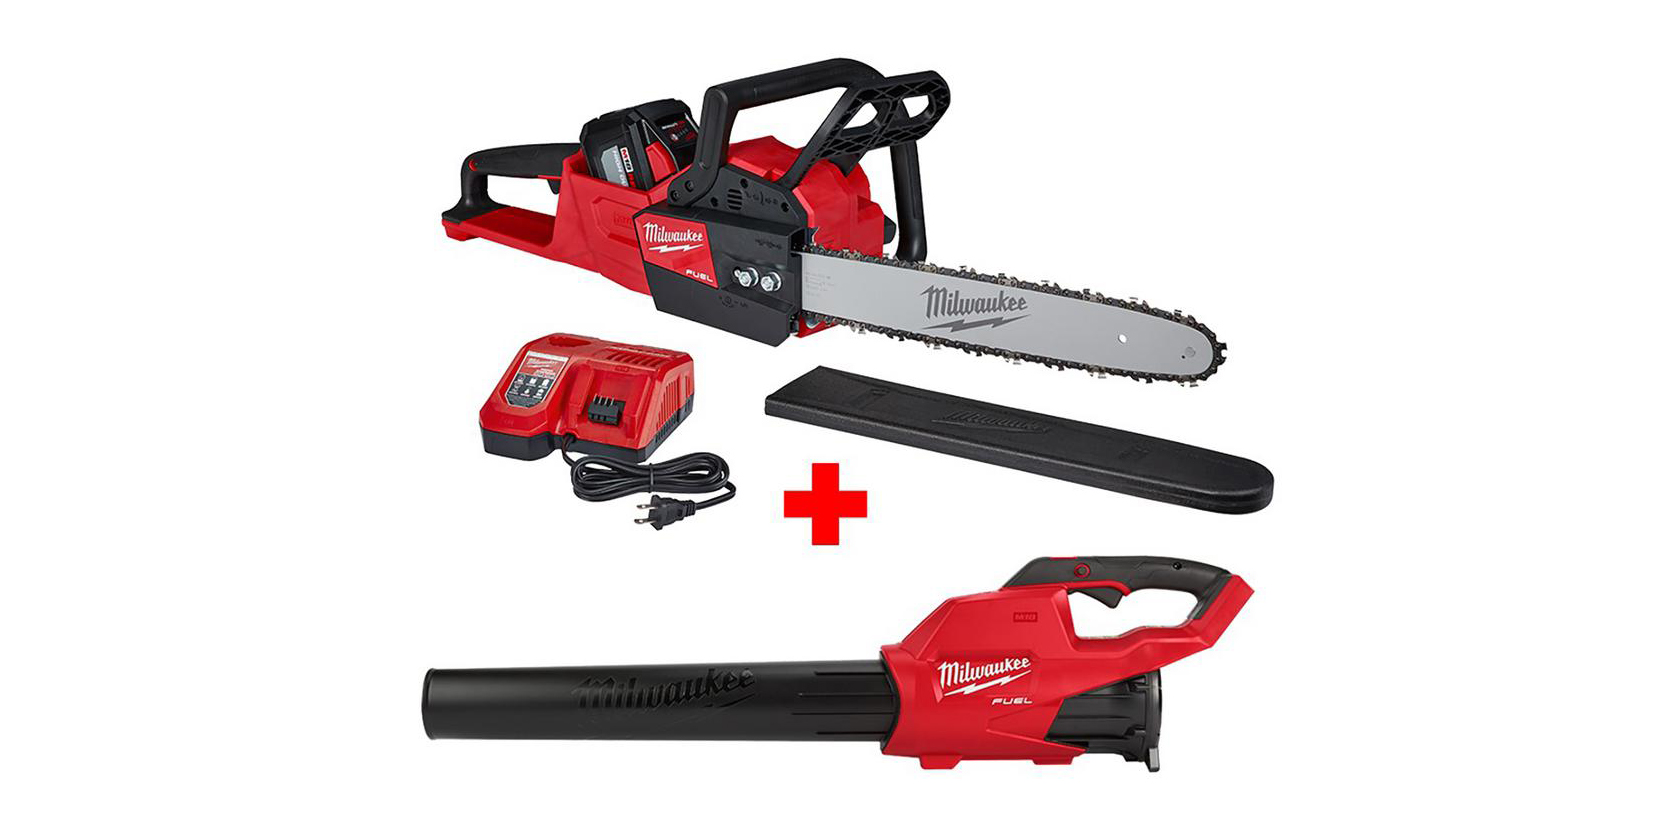 Today S Green Deals Include A Milwaukee M18 Electric